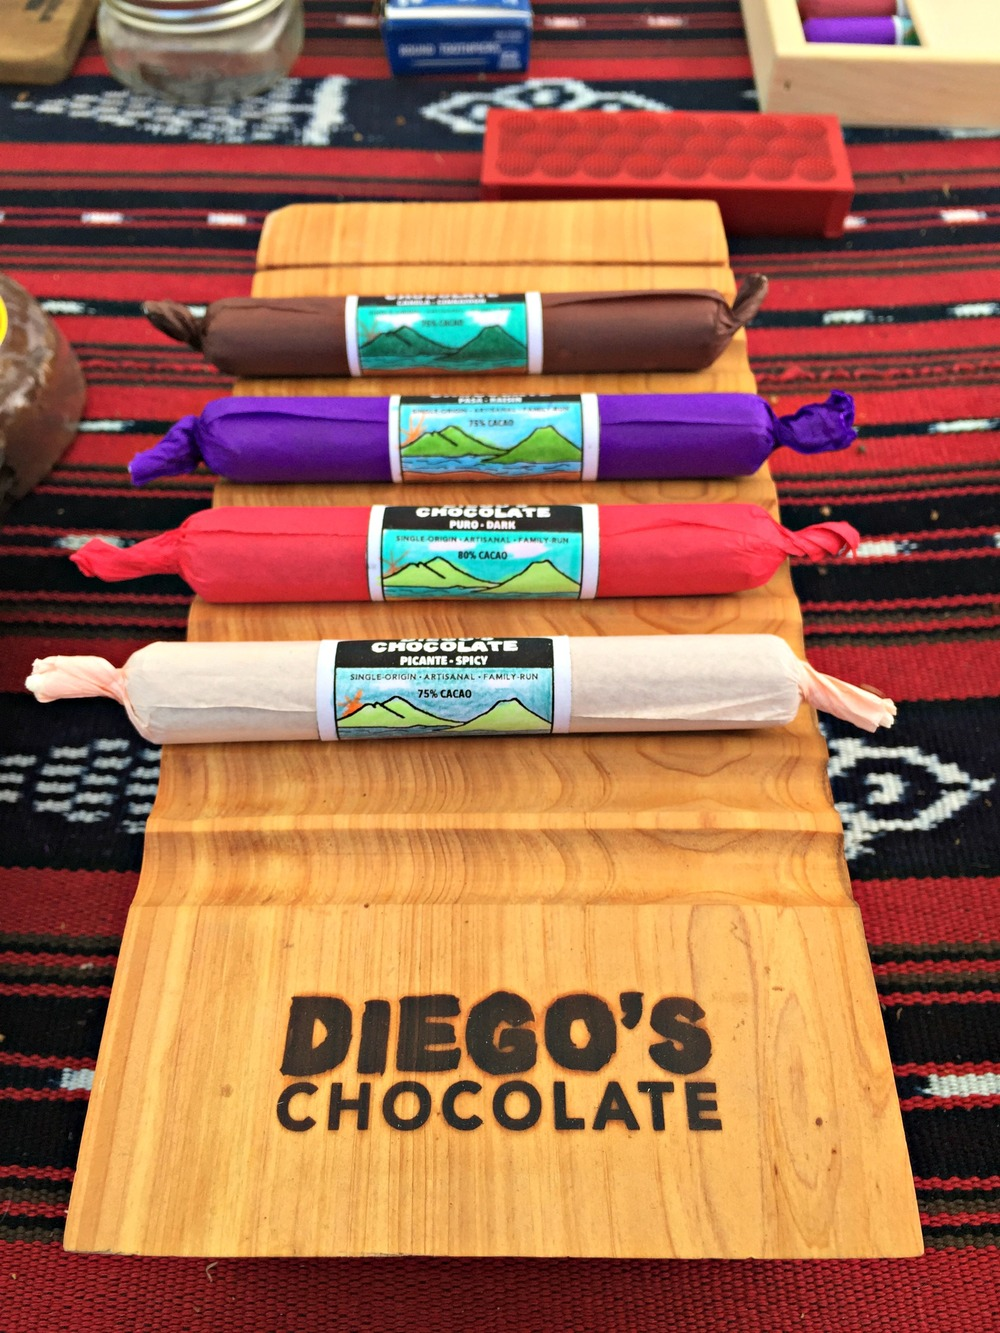 Diego's Chocolate